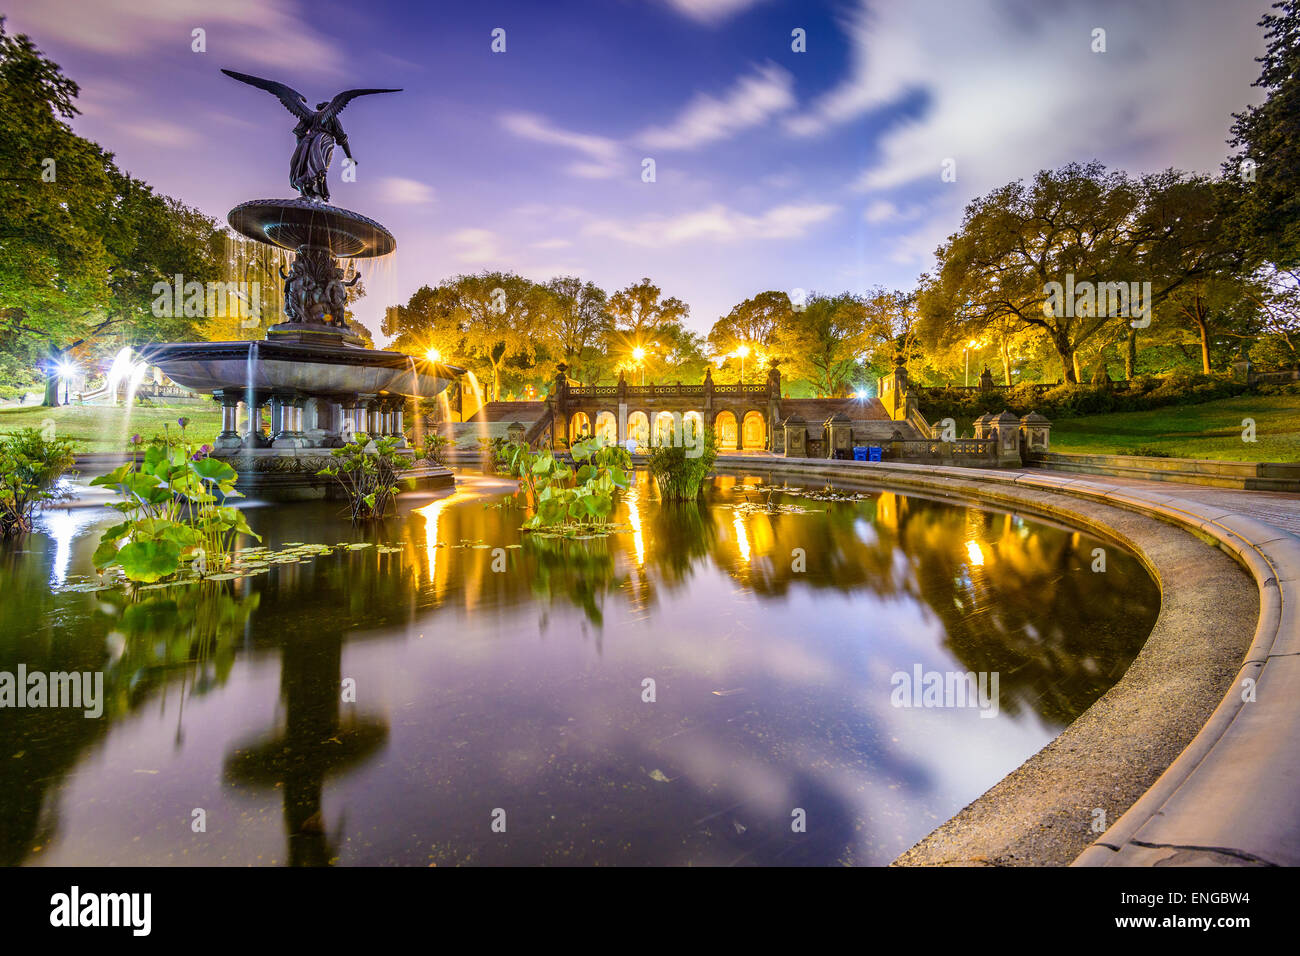 New York City, USA at Bethesda Terrace in Central Park. - Stock Image